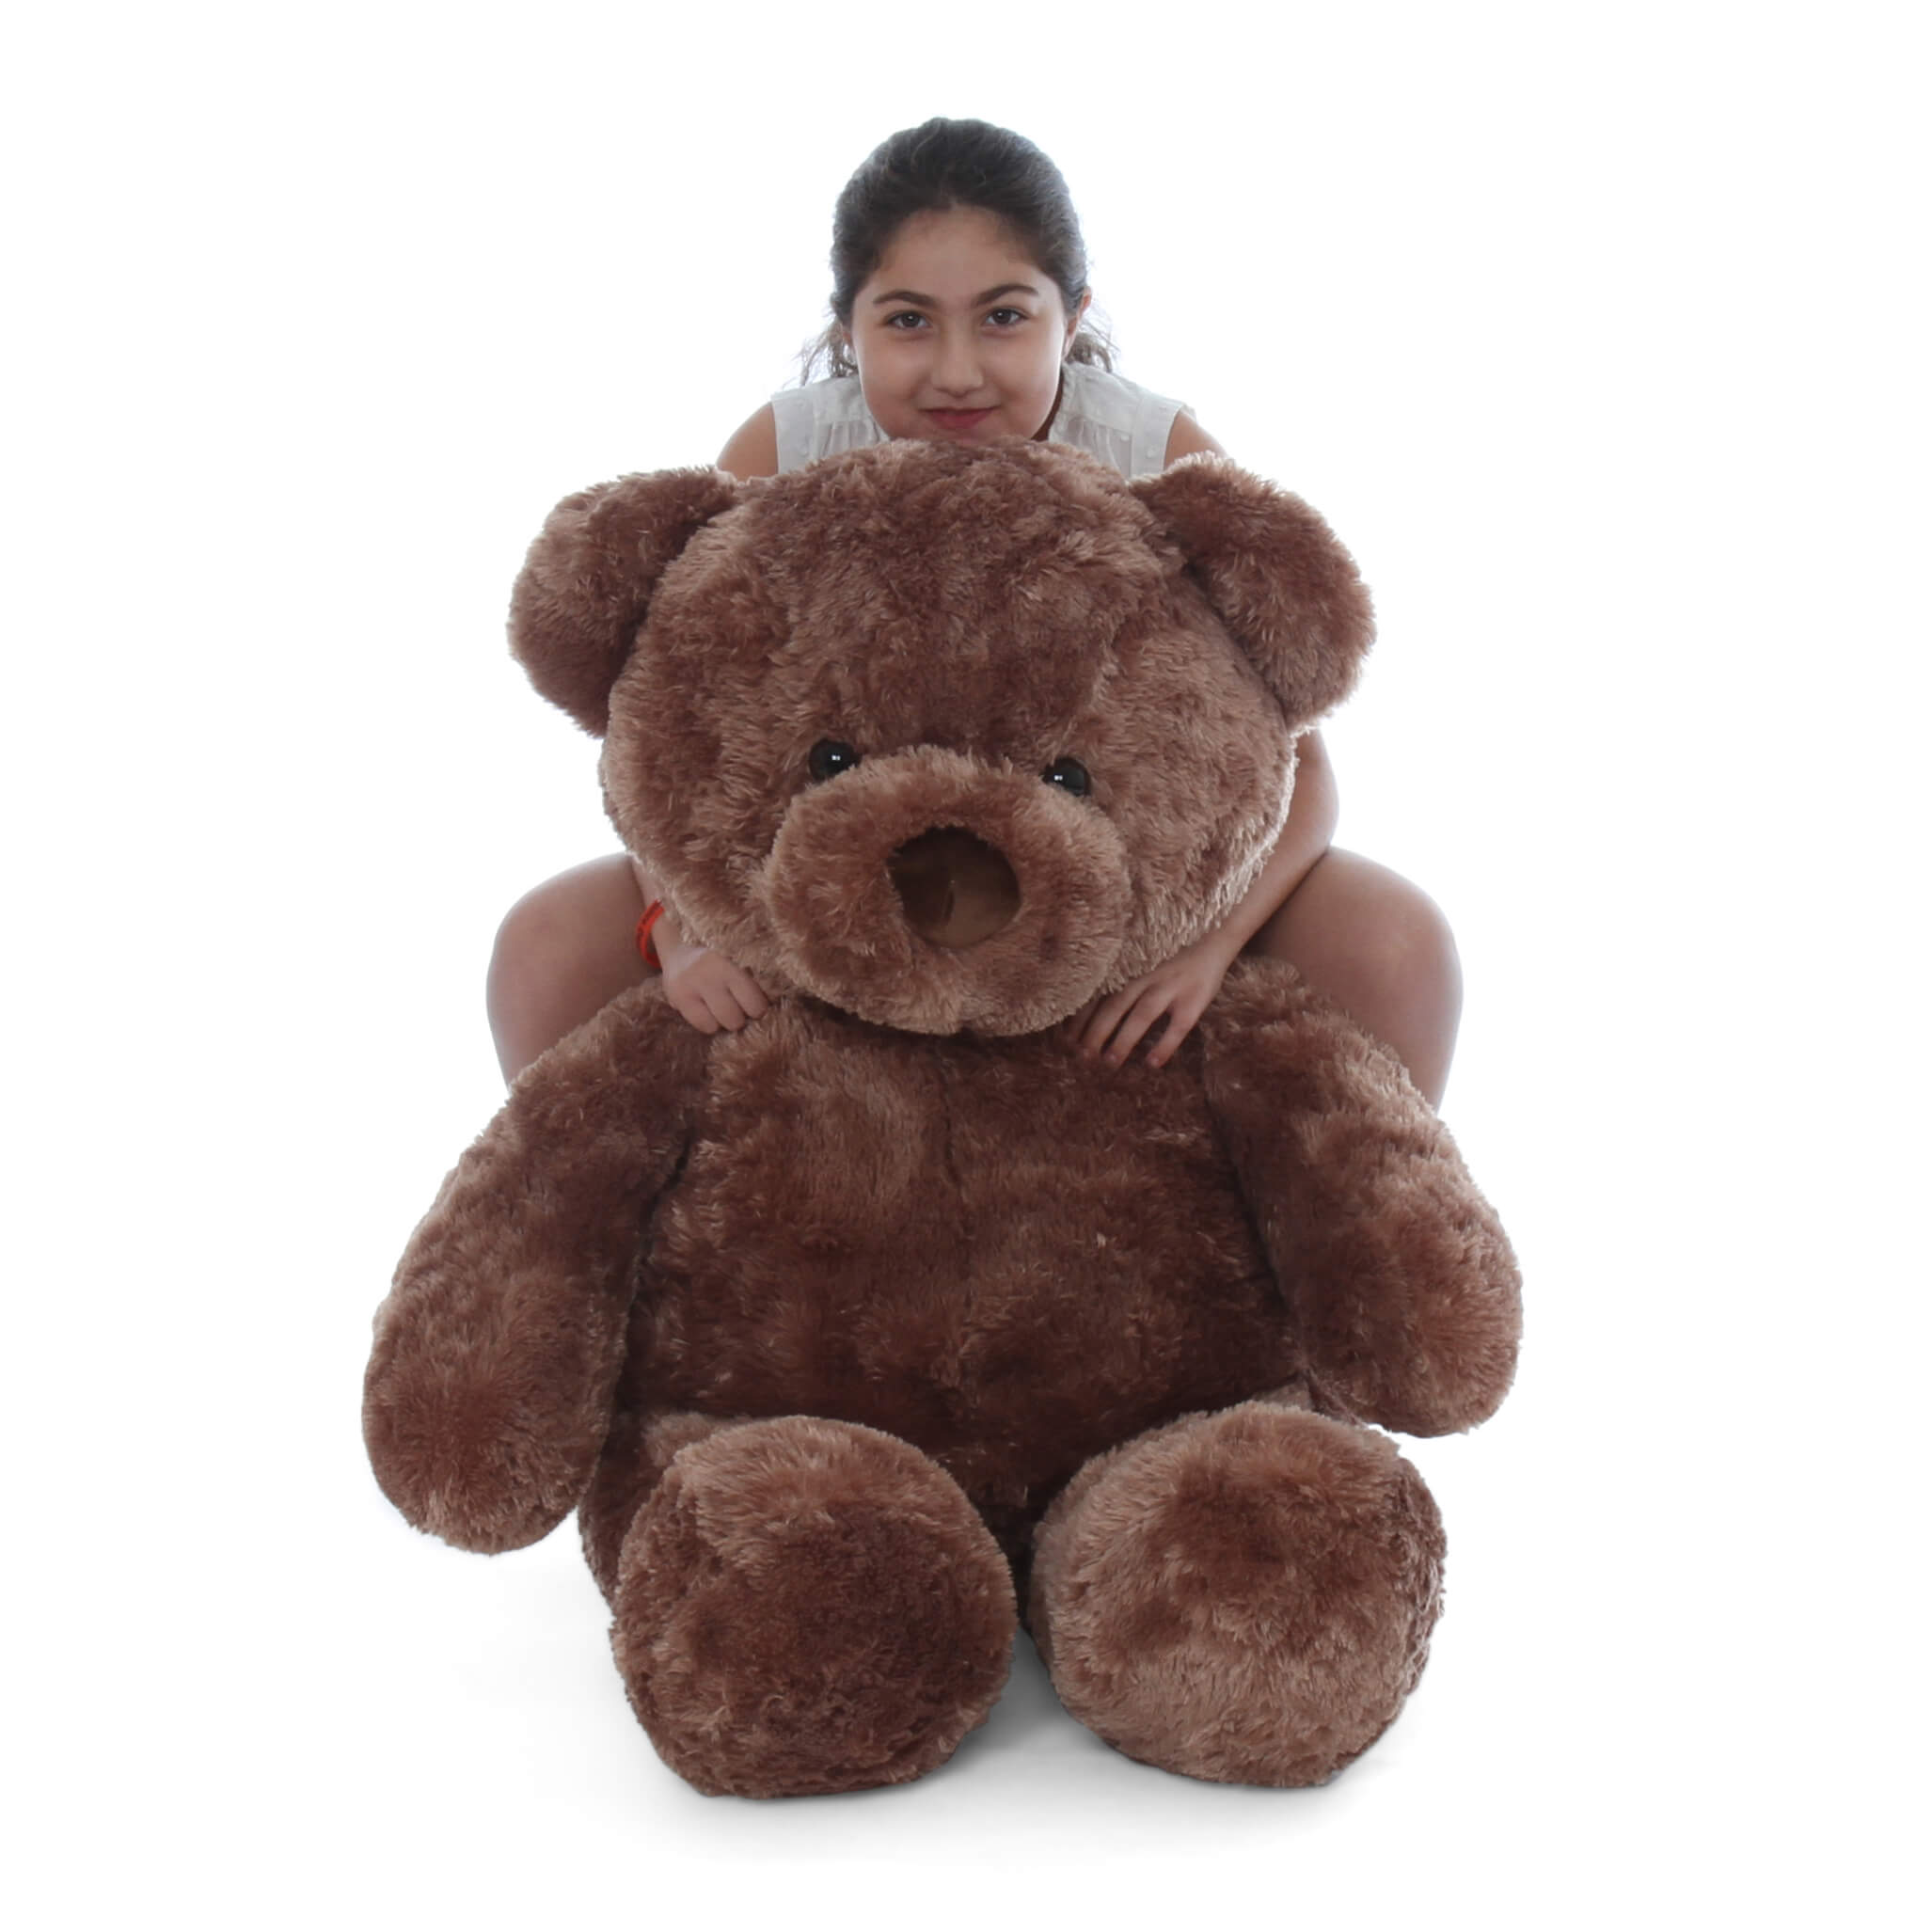 best-plush-chubs-is-a-huge-48in-teddy-bear-with-mocha-brown-fur-1.jpg